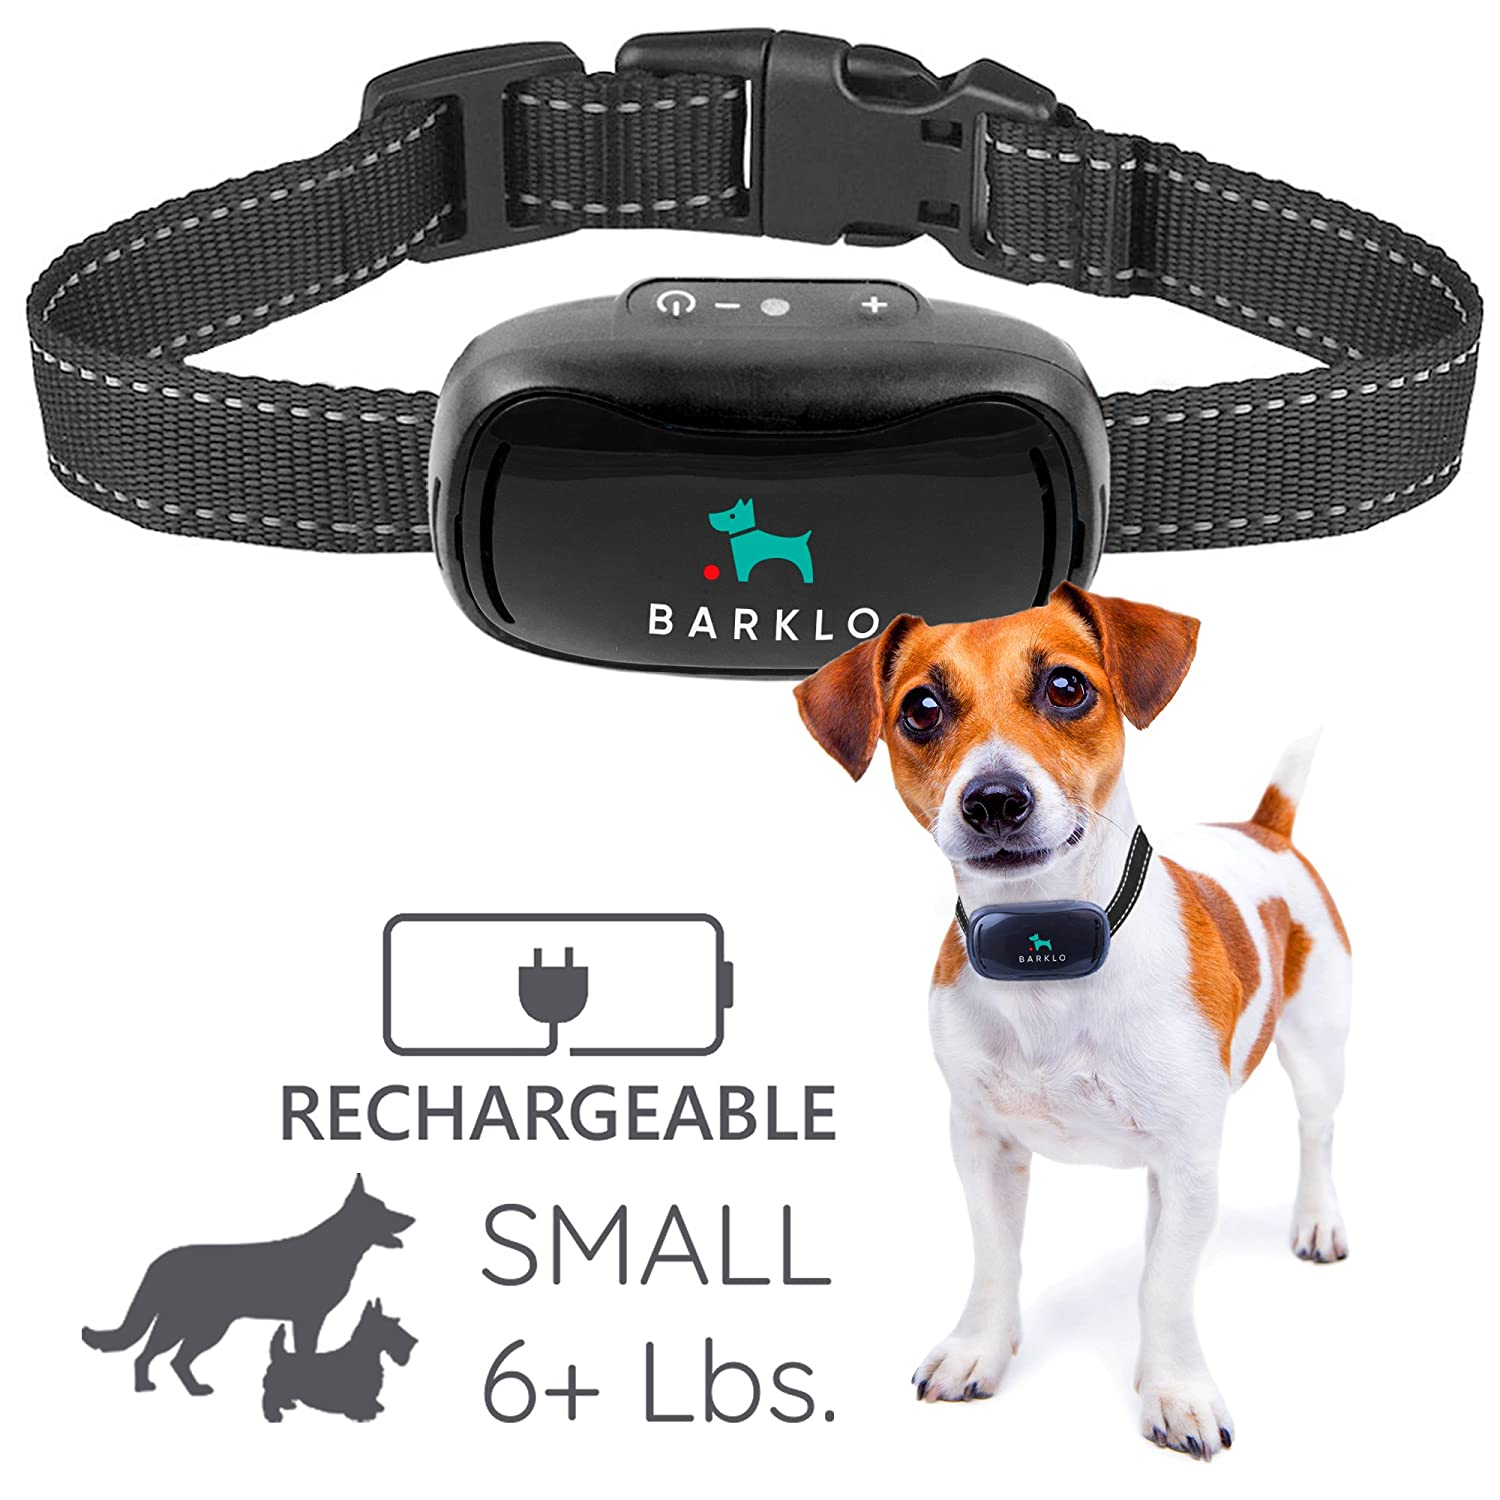 Black Small, Medium Black Small, Medium Barklo Small Dog Bark Collar for Small to Medium Dogs Rechargeable and Waterproof Vibrating Anti Bark Training Device Smallest & Most Safe On Amazon No Shock No Spiky Prongs  (6+ lbs)